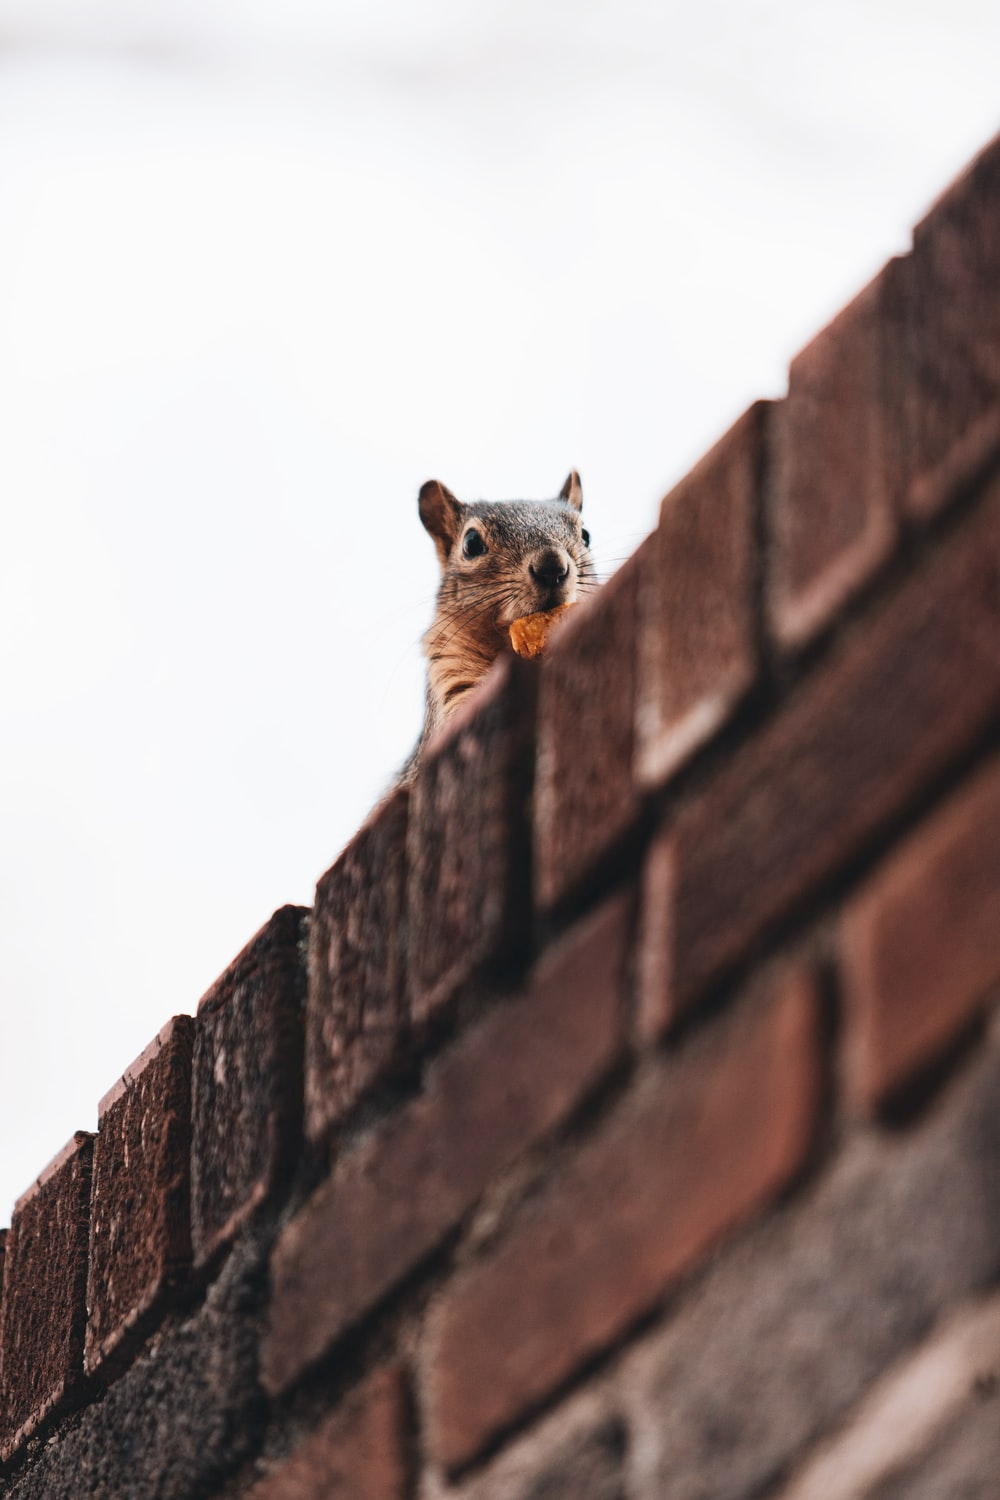 brown squirrel on brown brick wall